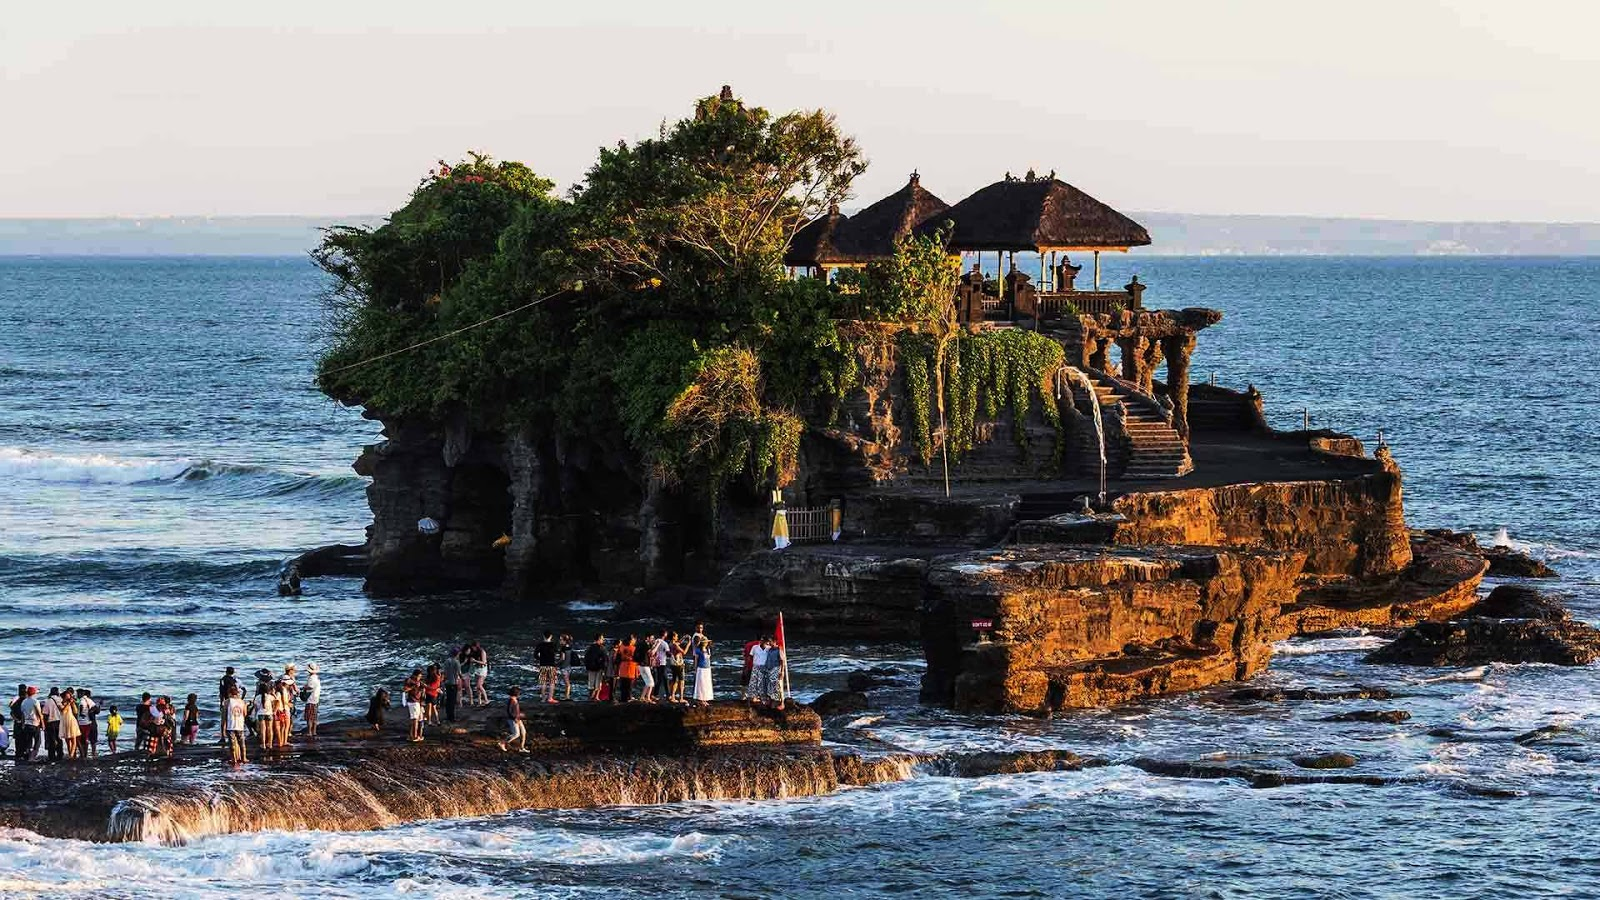 5 Most Beautiful Tourist Attractions in Bali You Must Visit